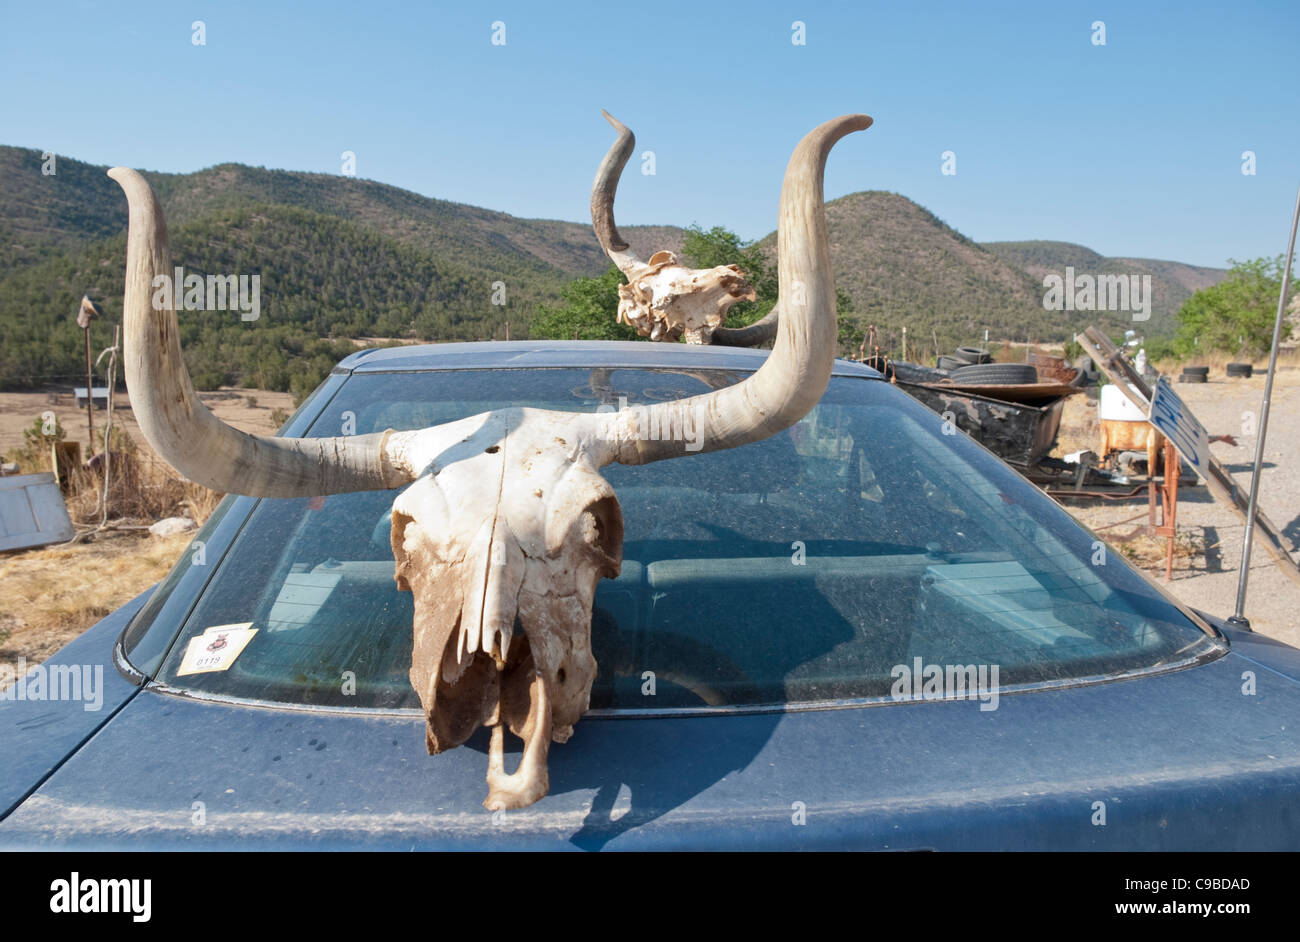 Skulls are among the menagerie of items for sale at Joe Bob's junk shop along route 70 in Southern New Mexico. - Stock Image